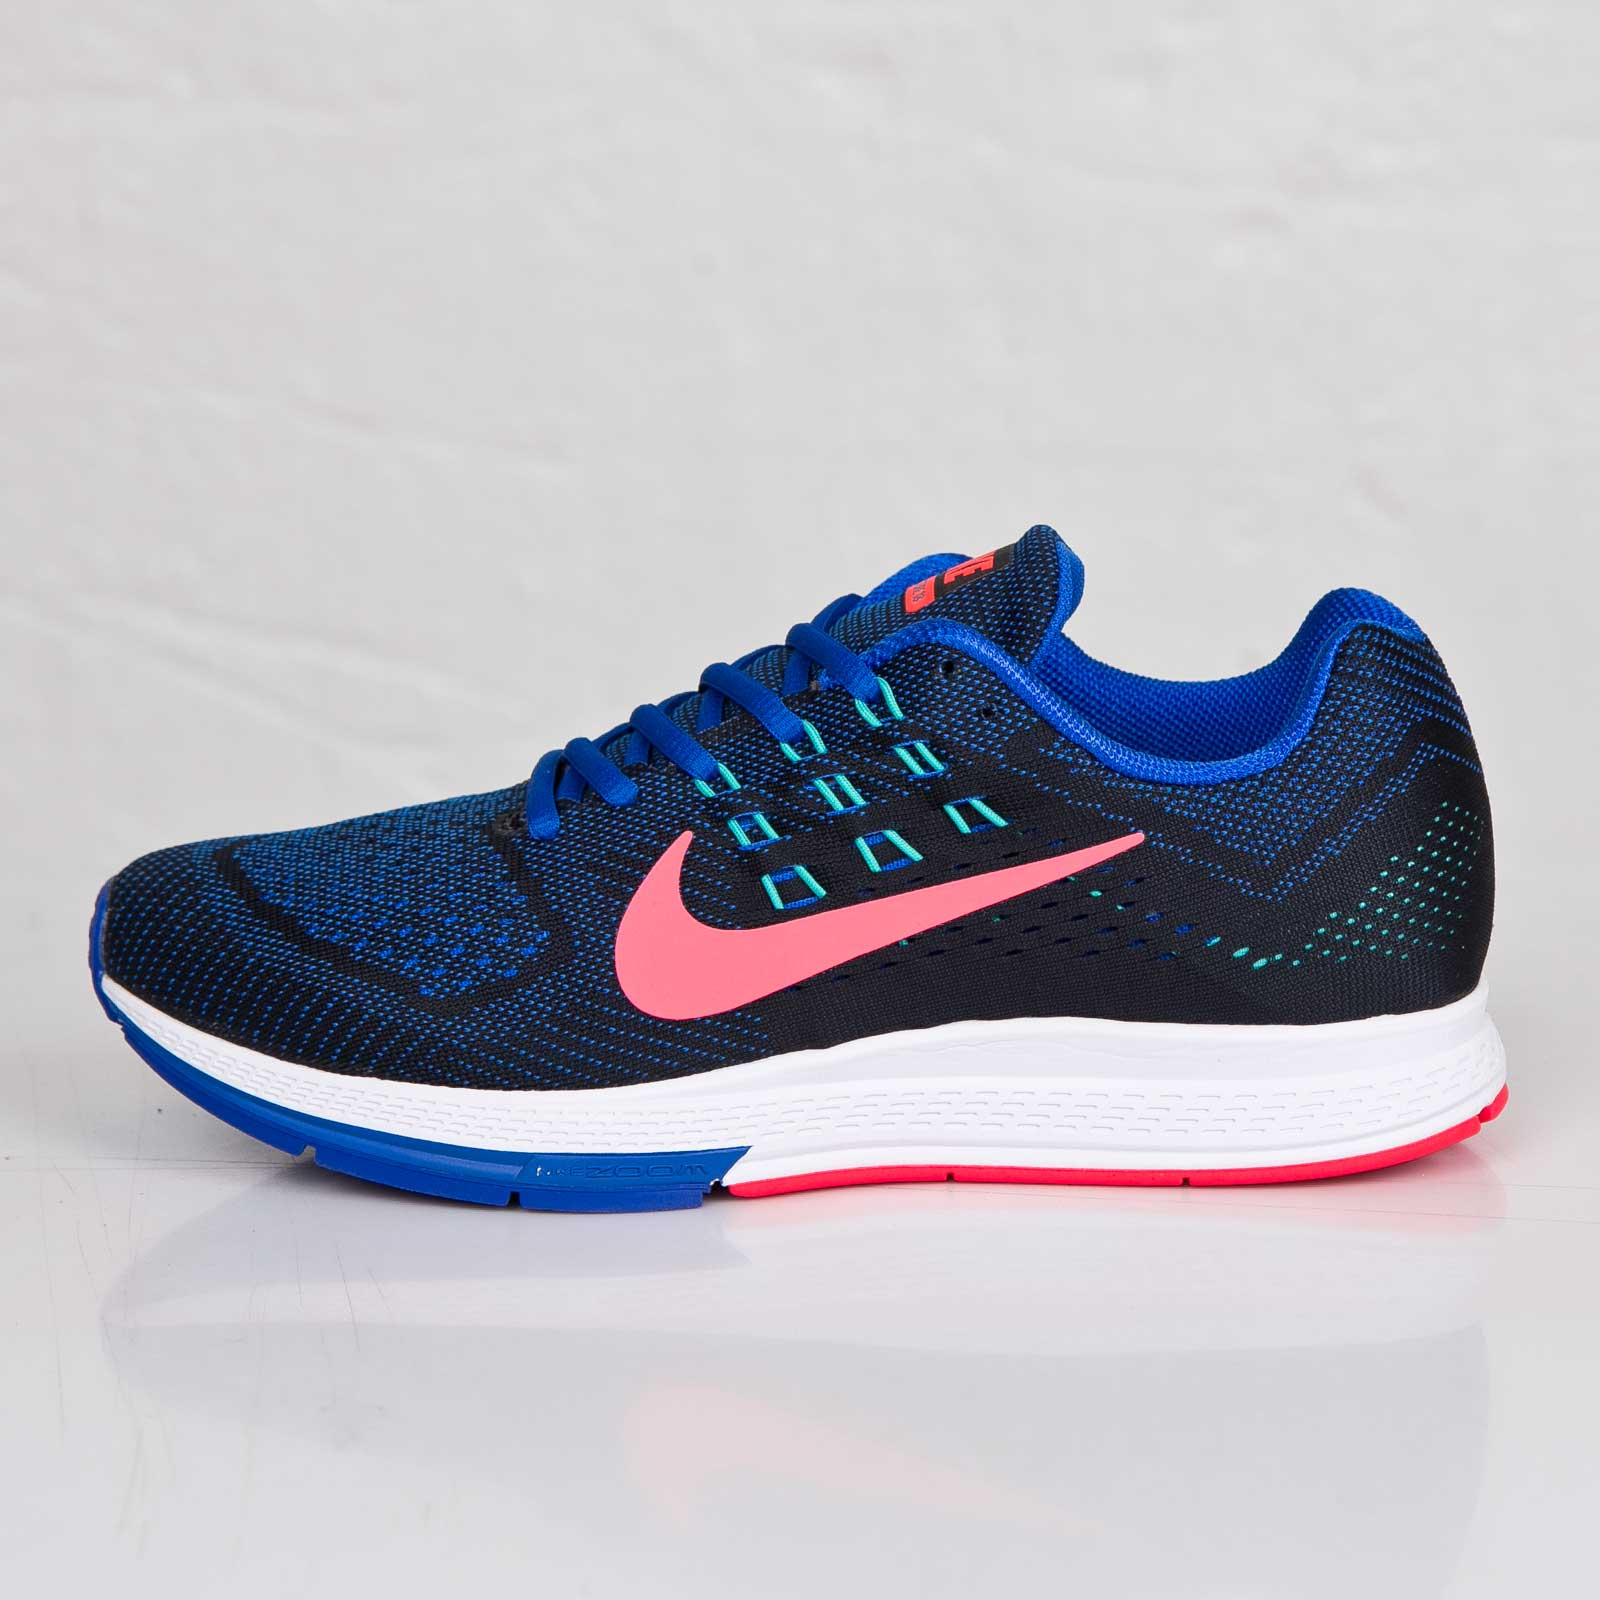 the latest 24078 a2f6f ... kvalitetsprodukter 939rw 2a5ec 3e79f  switzerland nike air zoom  structure 18 official supplier eeb40 766a6